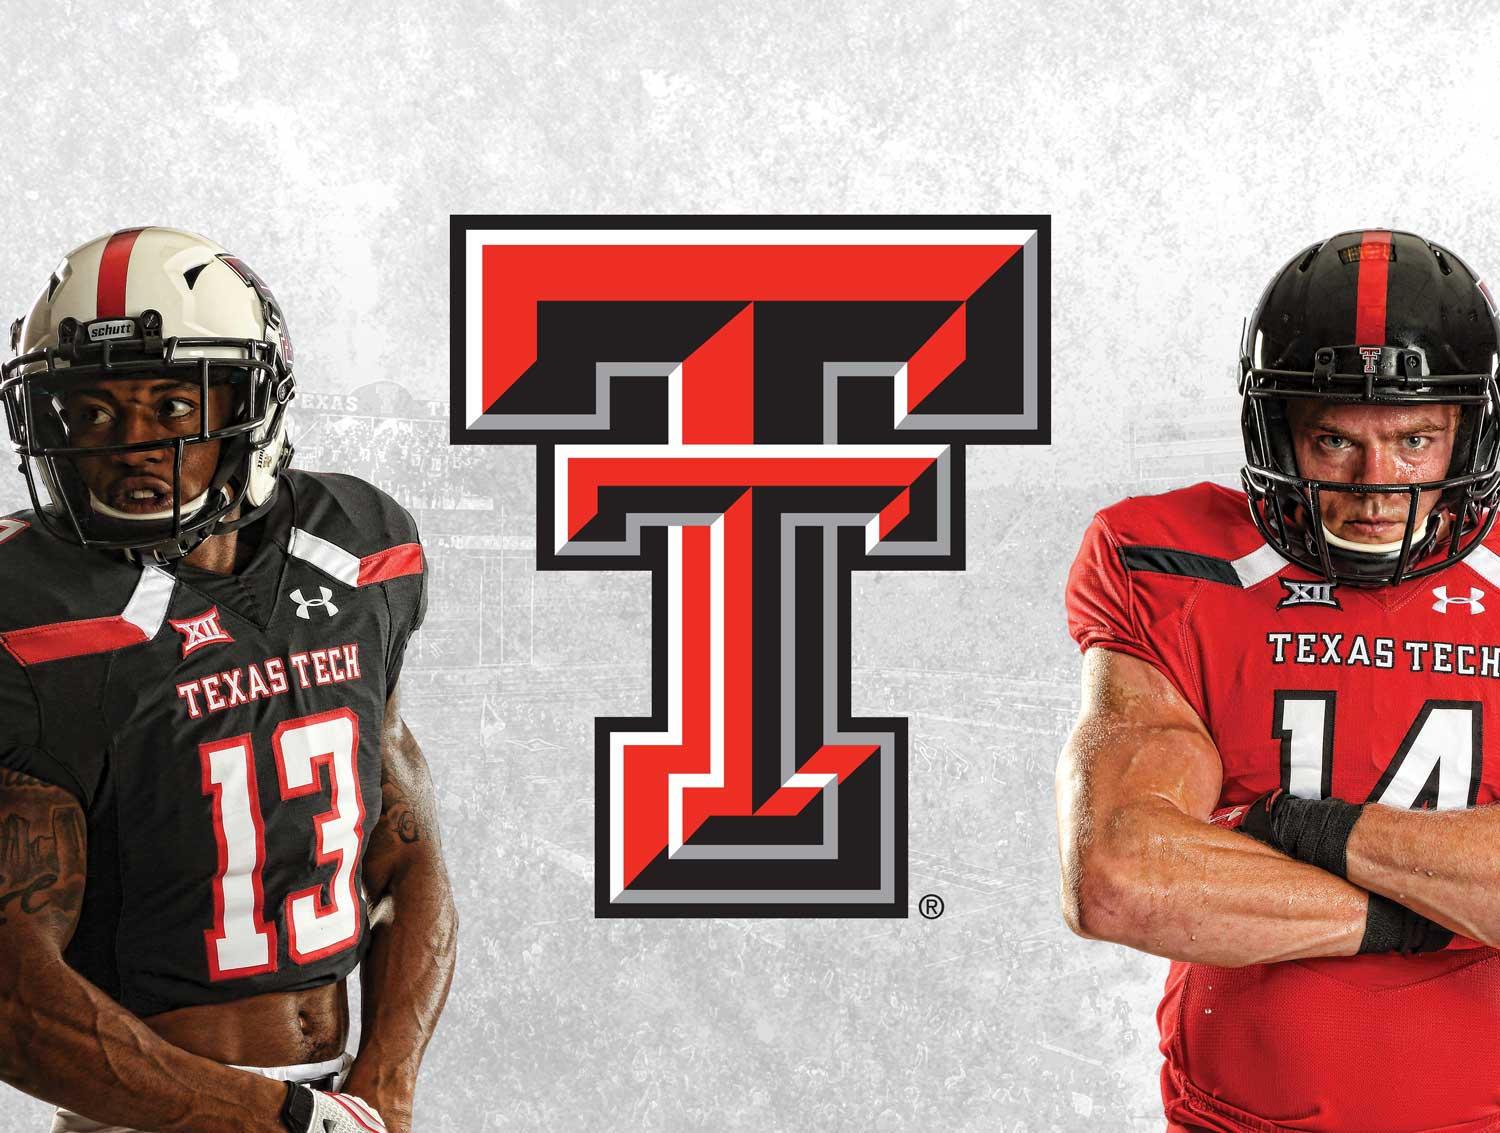 Photo of the Texas Tech logo and players.